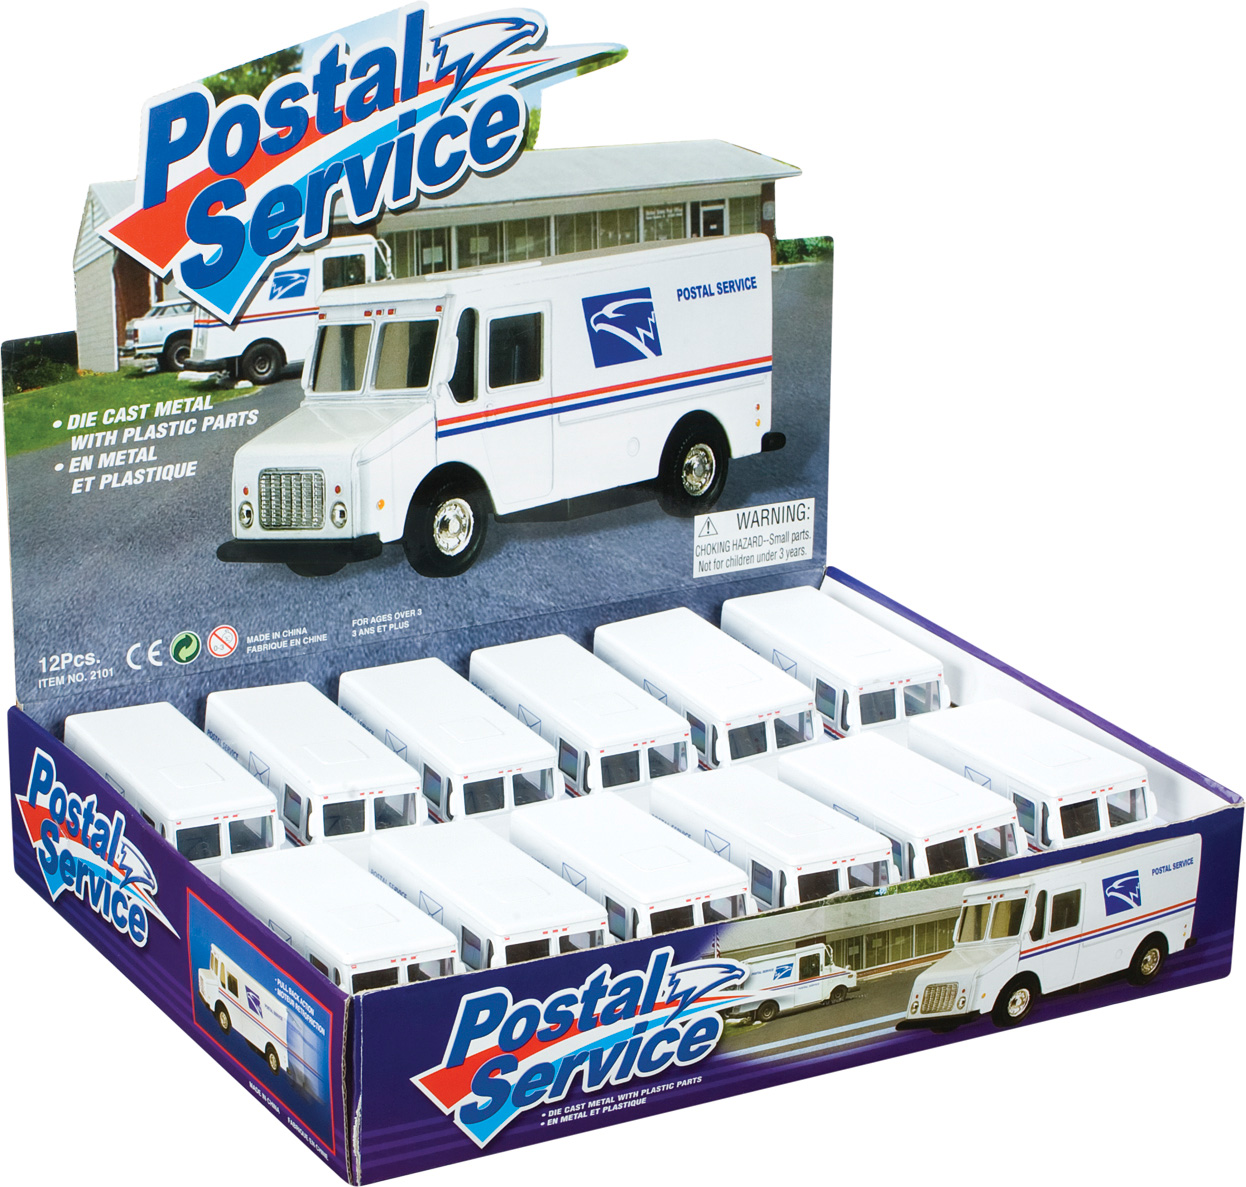 Mail Truck Toys